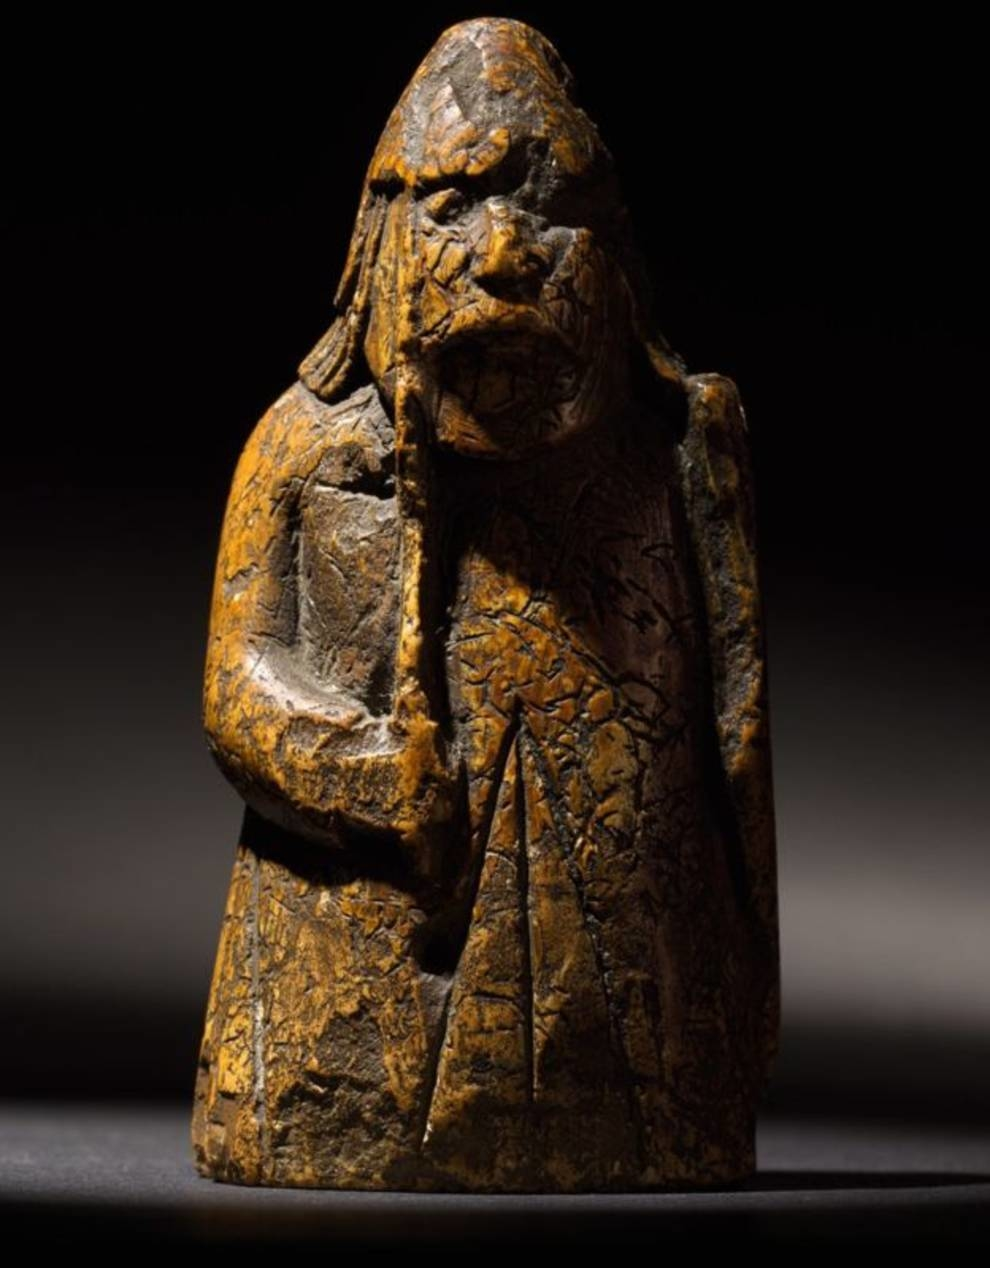 A chess piece from Lewis Island, which